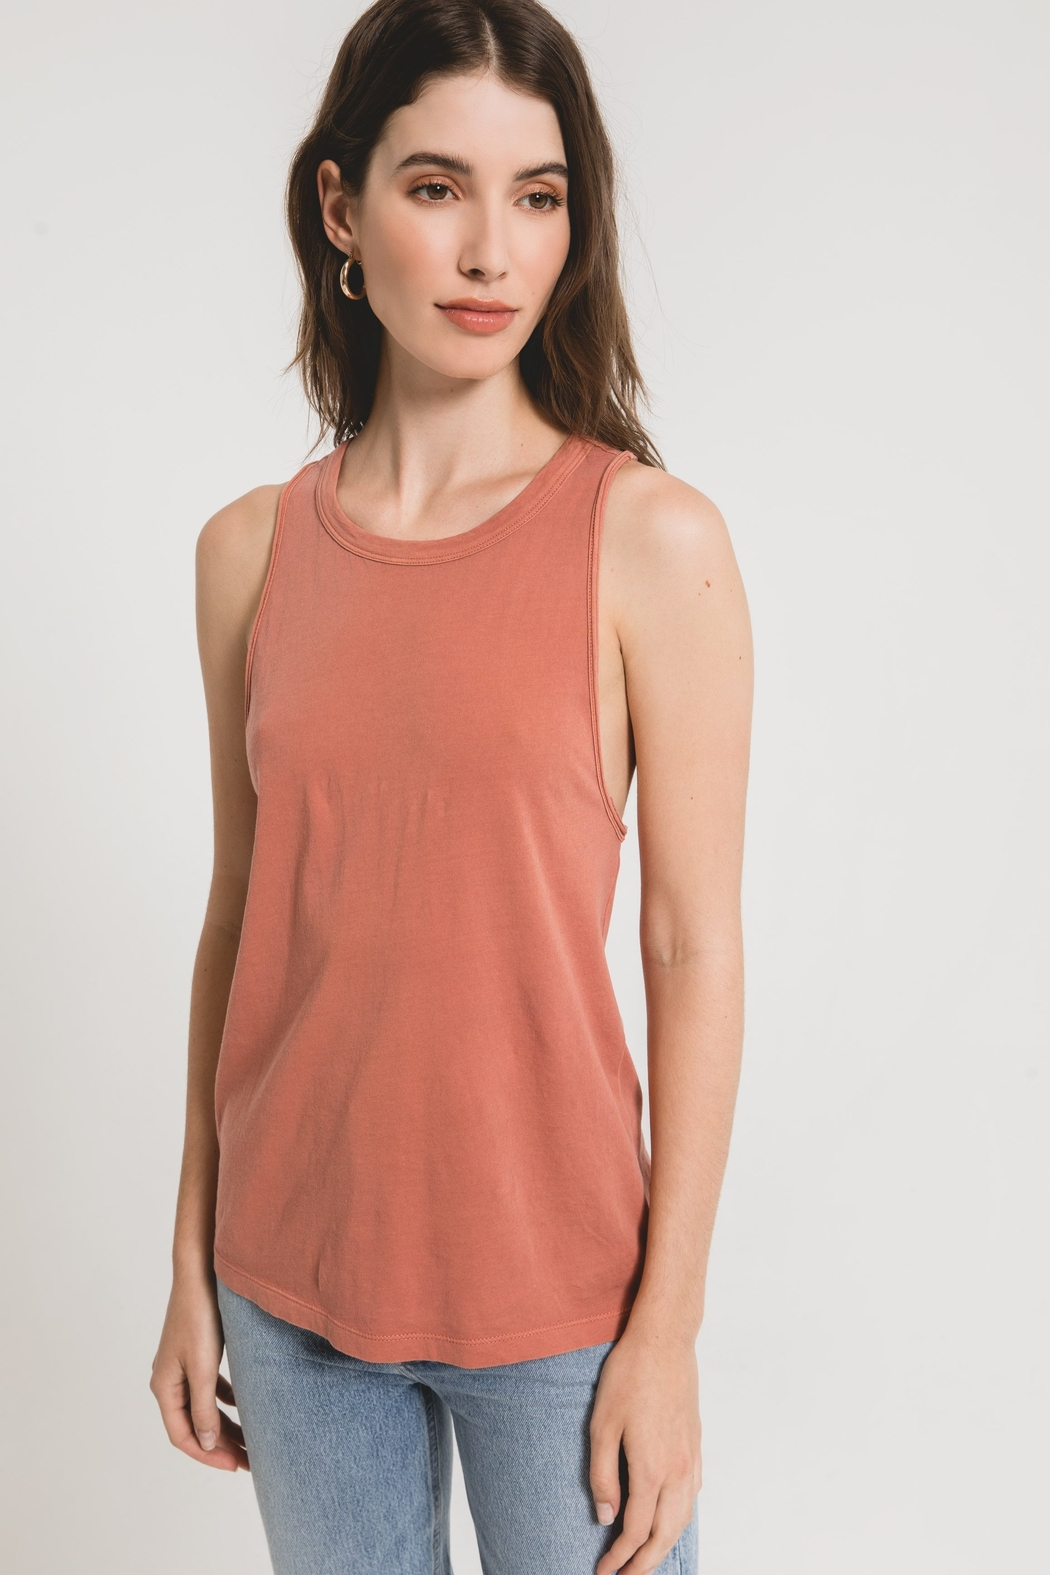 z supply The Organic Cotton Muscle Tank - Main Image